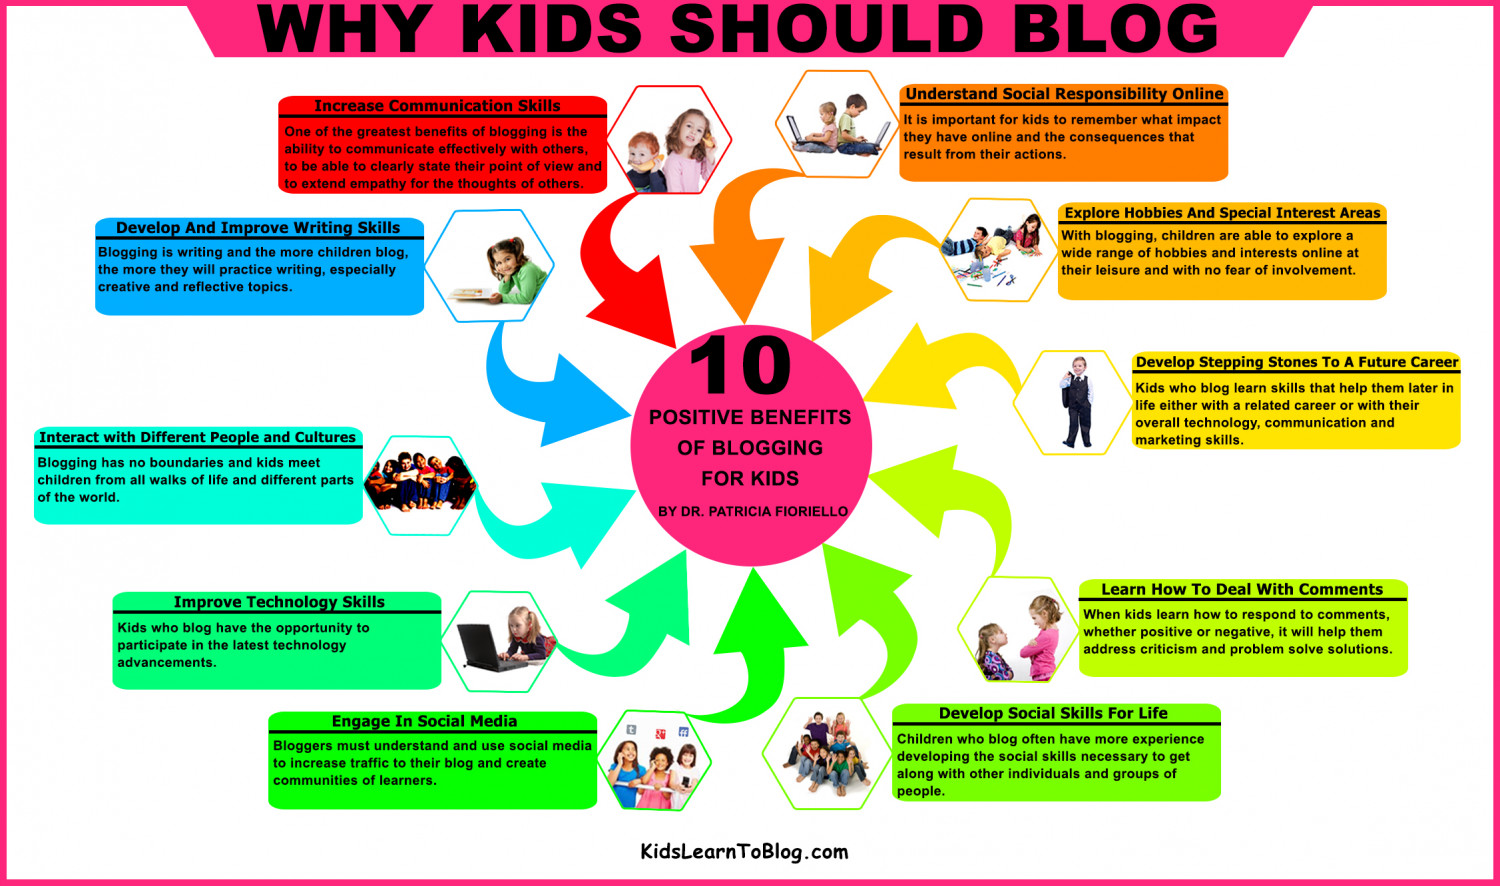 10 Positive Benefits of Blogging for Kids Infographic